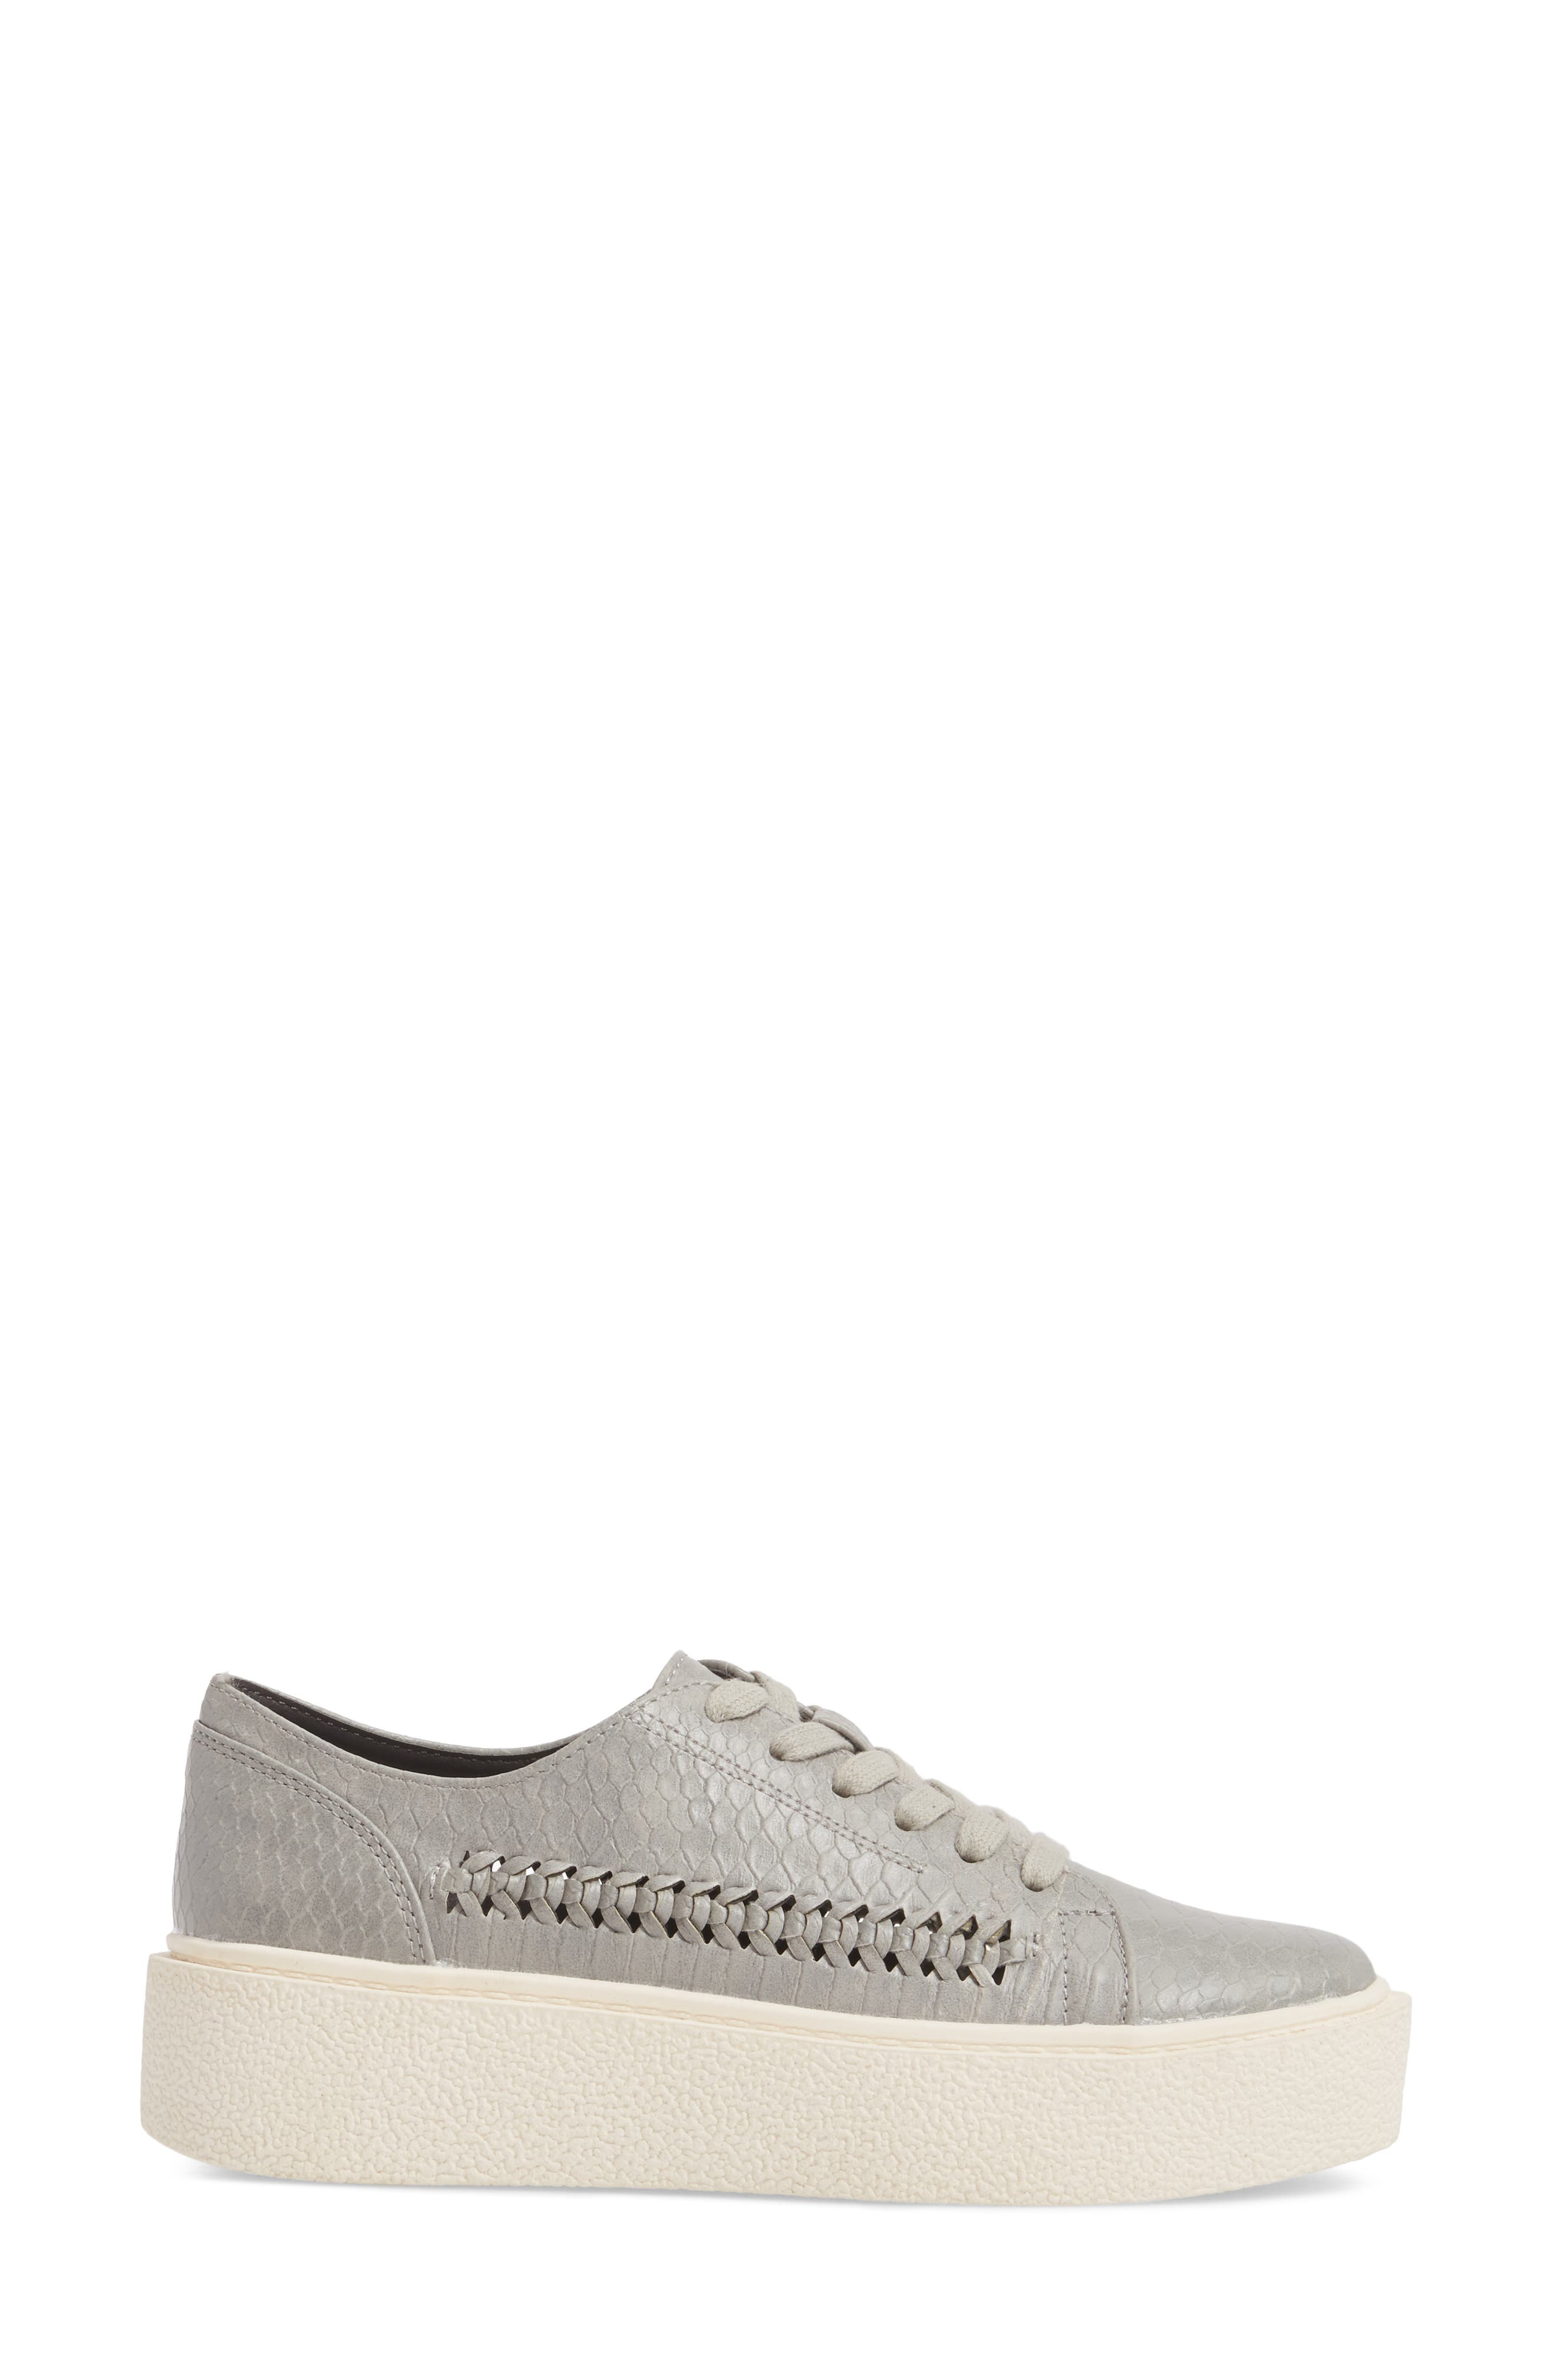 White Out Platform Sneaker,                             Alternate thumbnail 3, color,                             Grey Fabric